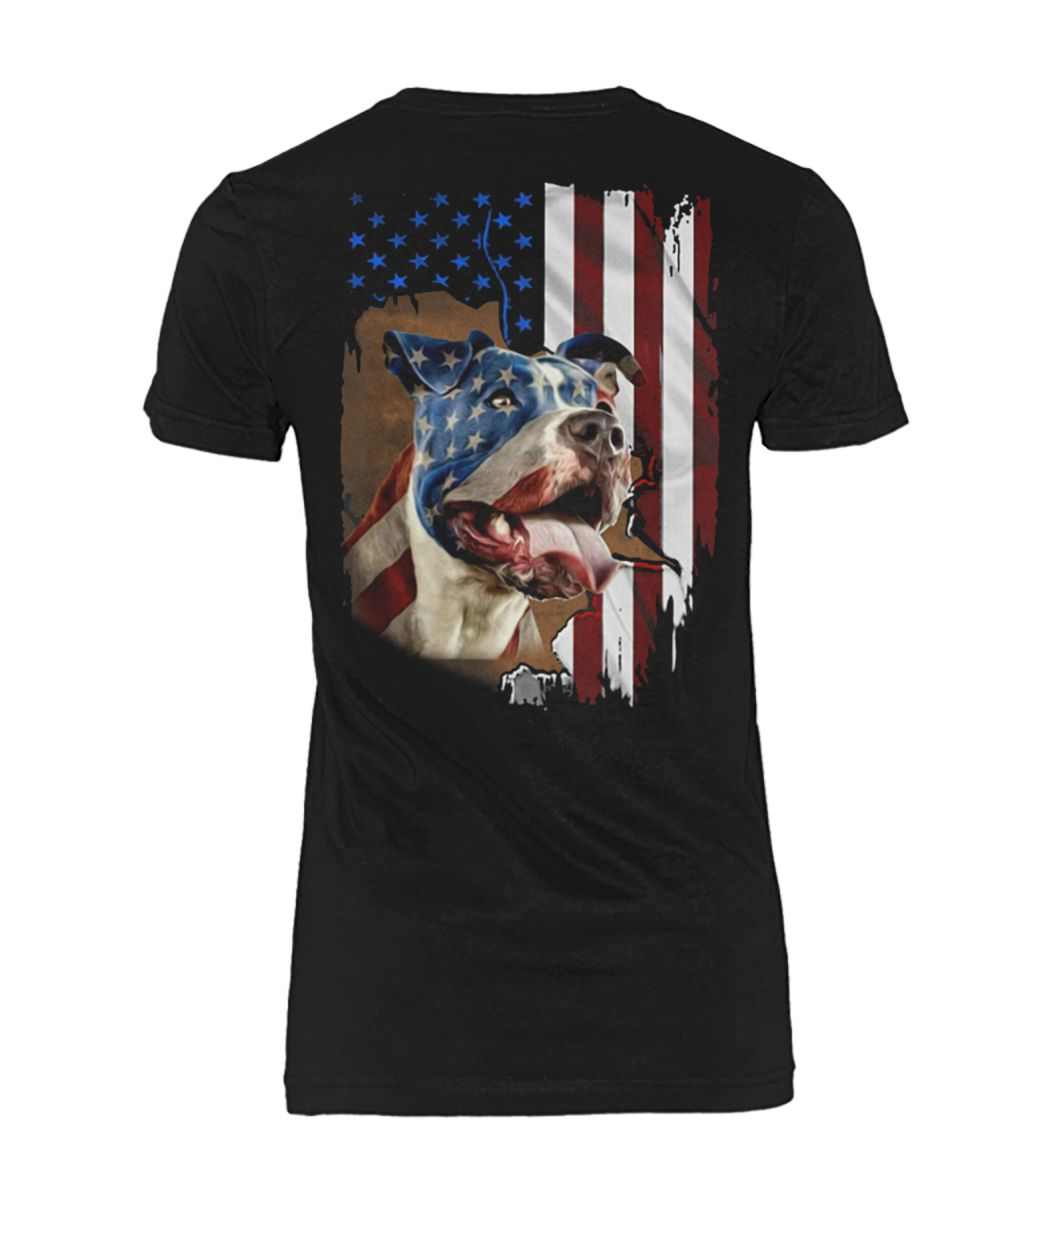 Independence day american flag pitbull women's crew tee